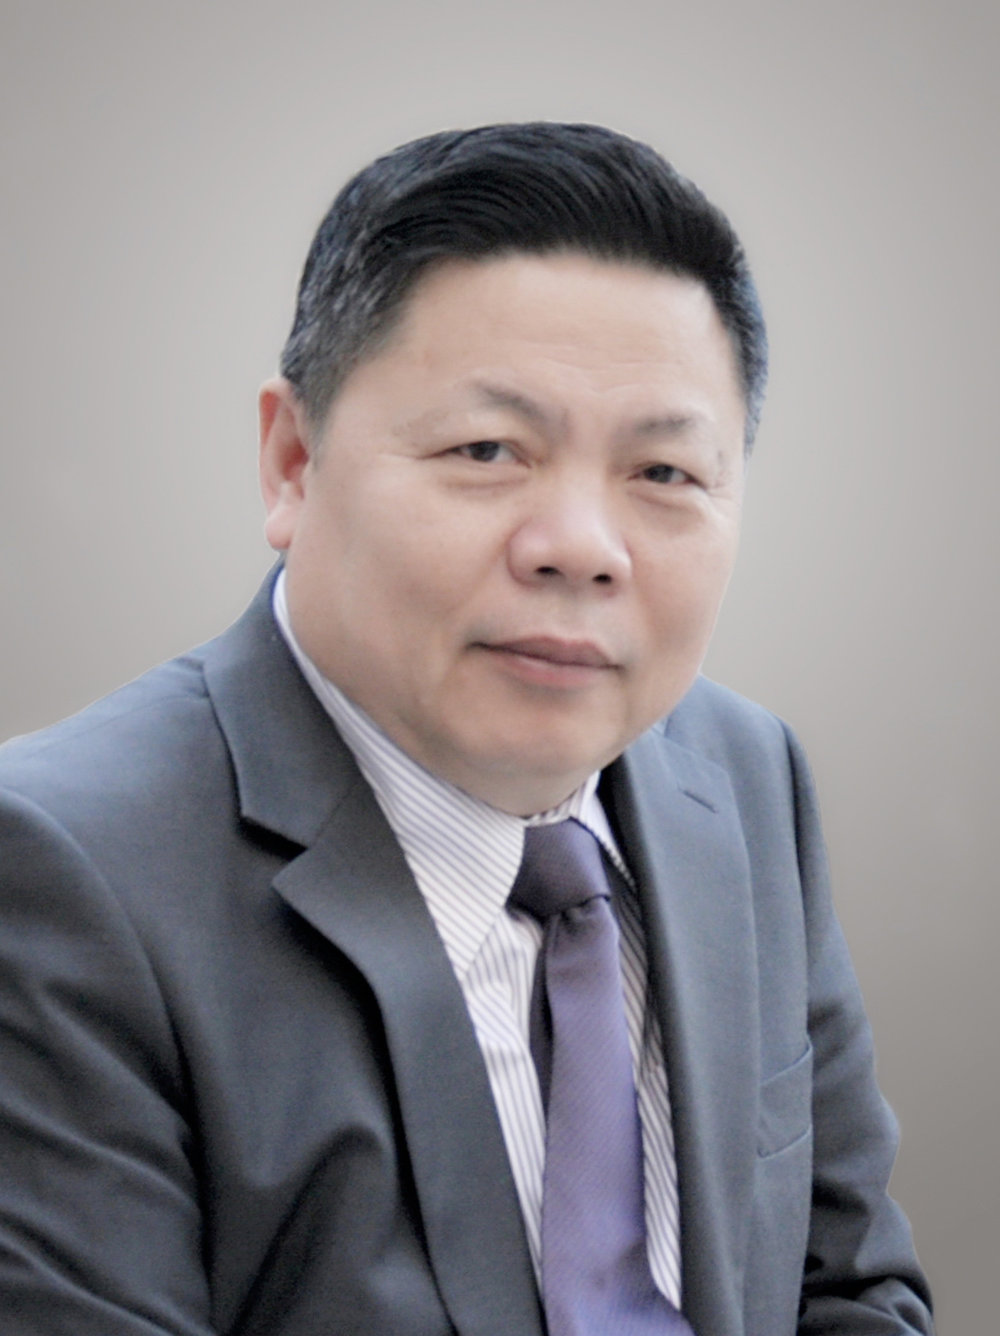 Wu Yi Long - surgery and targeted treatment